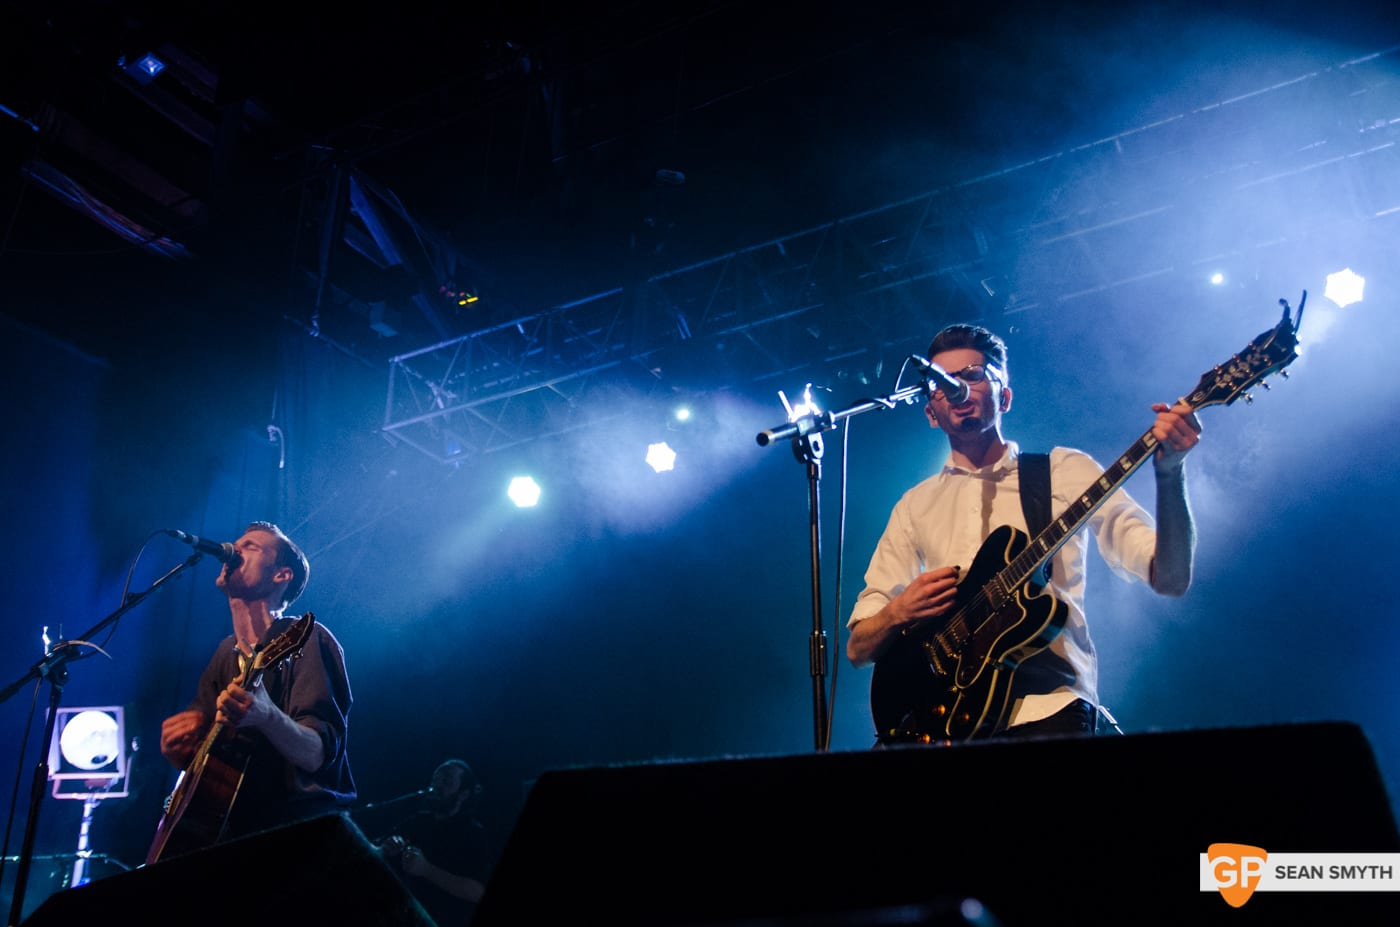 hudson-taylor-at-the-olympia-theatre-26-2-15-by-sean-smyth-2-of-26_16569197428_o